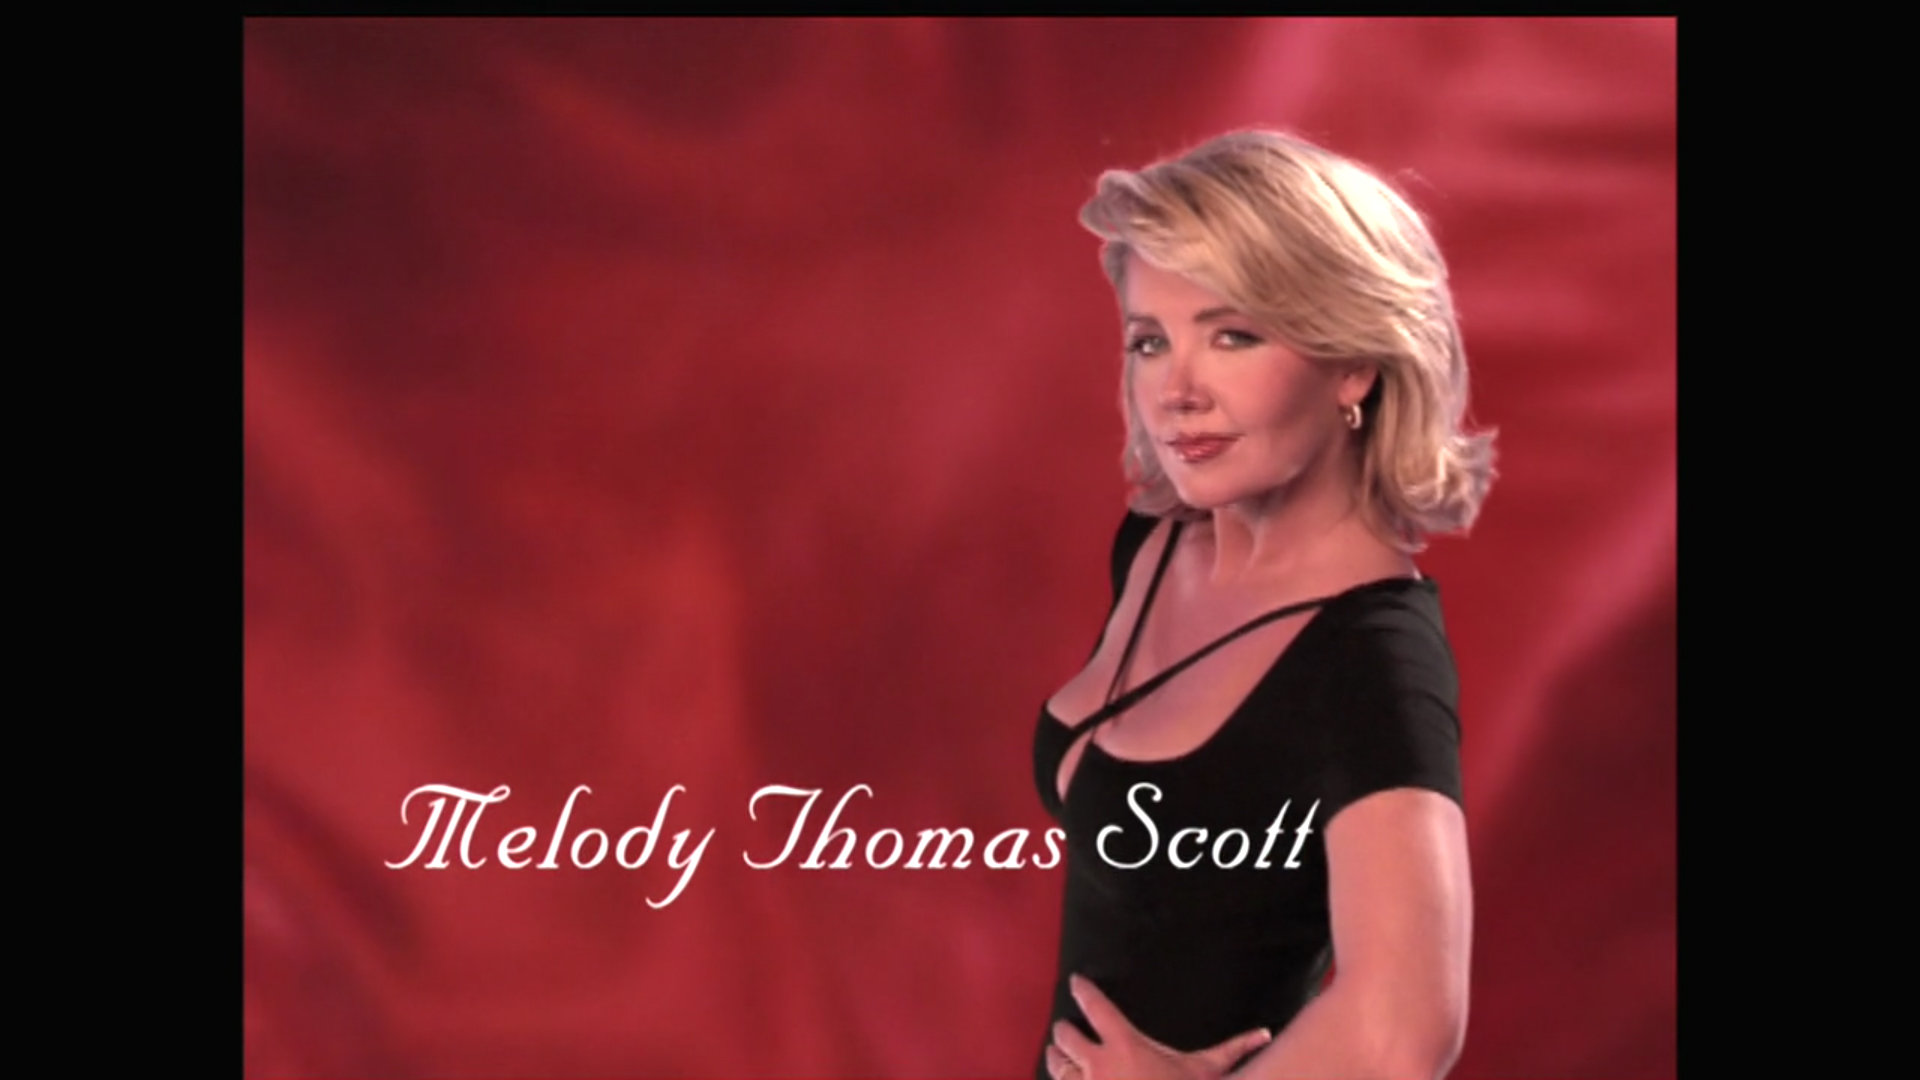 Melody Thomas Scott nudes (96 foto and video), Tits, Hot, Selfie, cleavage 2019